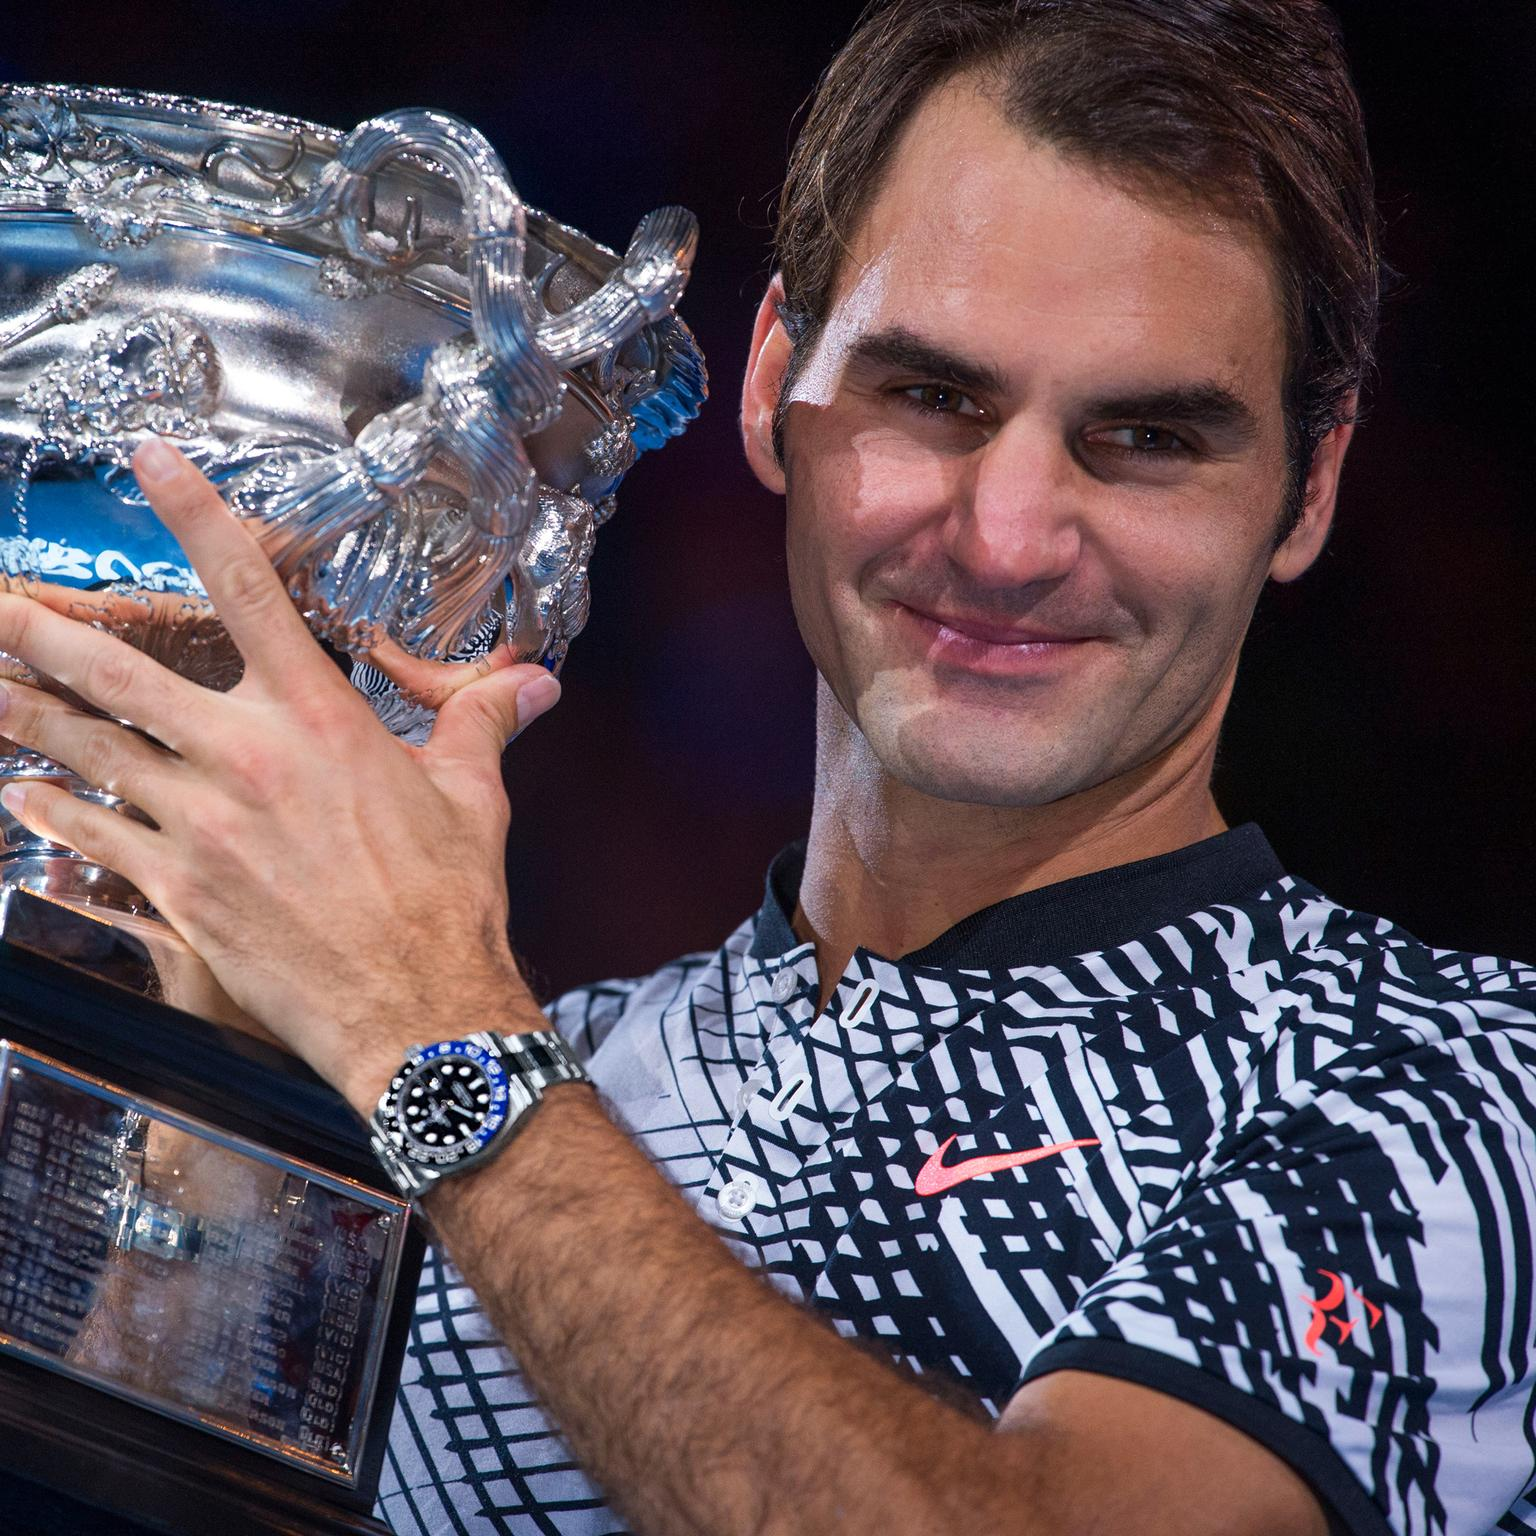 Roger Federer wins 2017 Australian Open wearing a Rolex GMT Master-ll watch